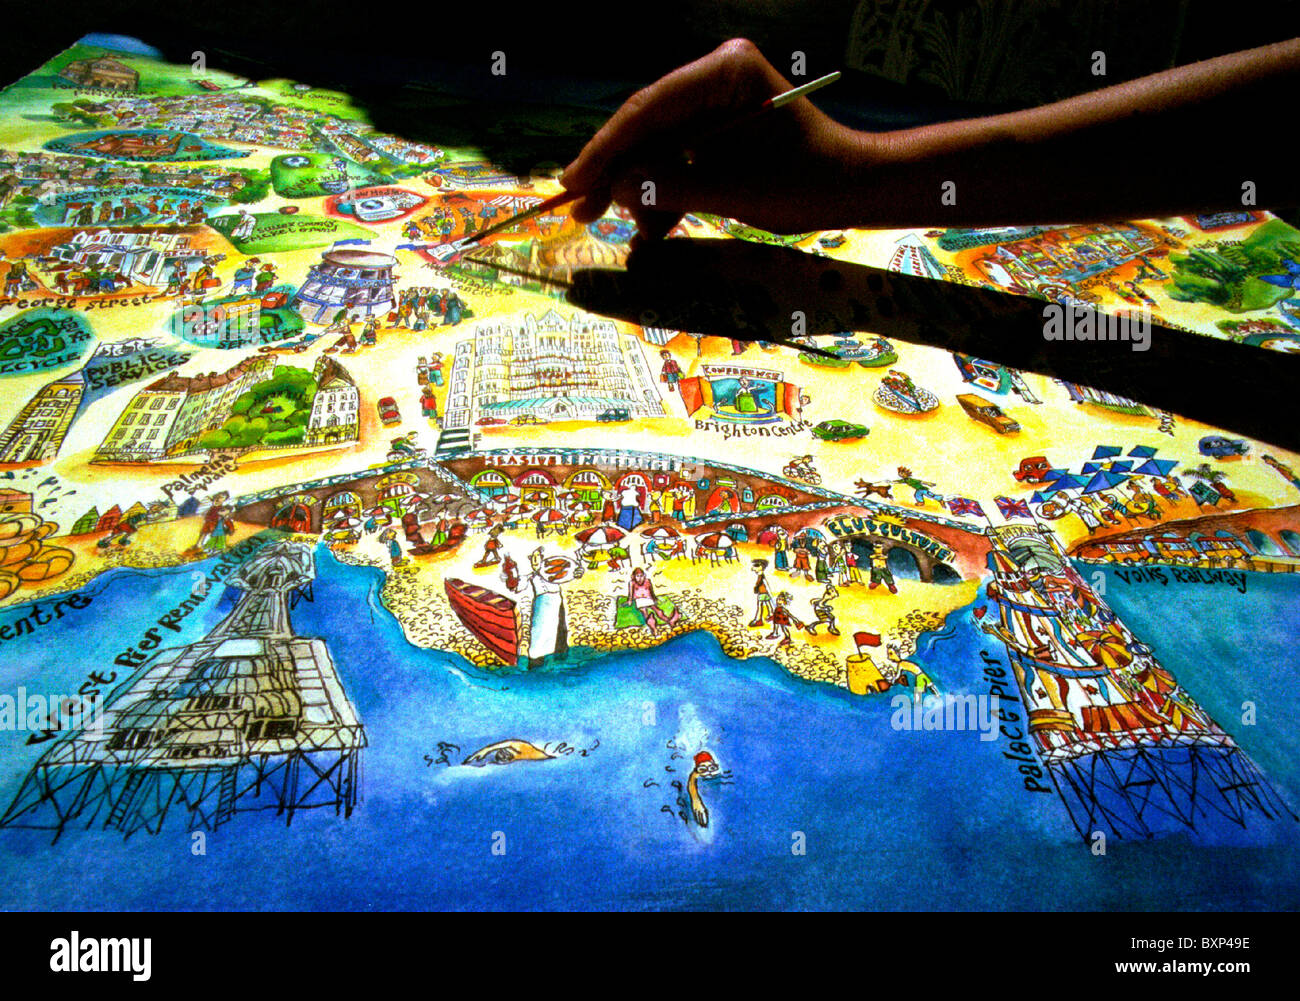 Artist Jo Ramm puts in the final details to a unique pictorial map of Brighton and Hove, entitled 'A Different - Stock Image